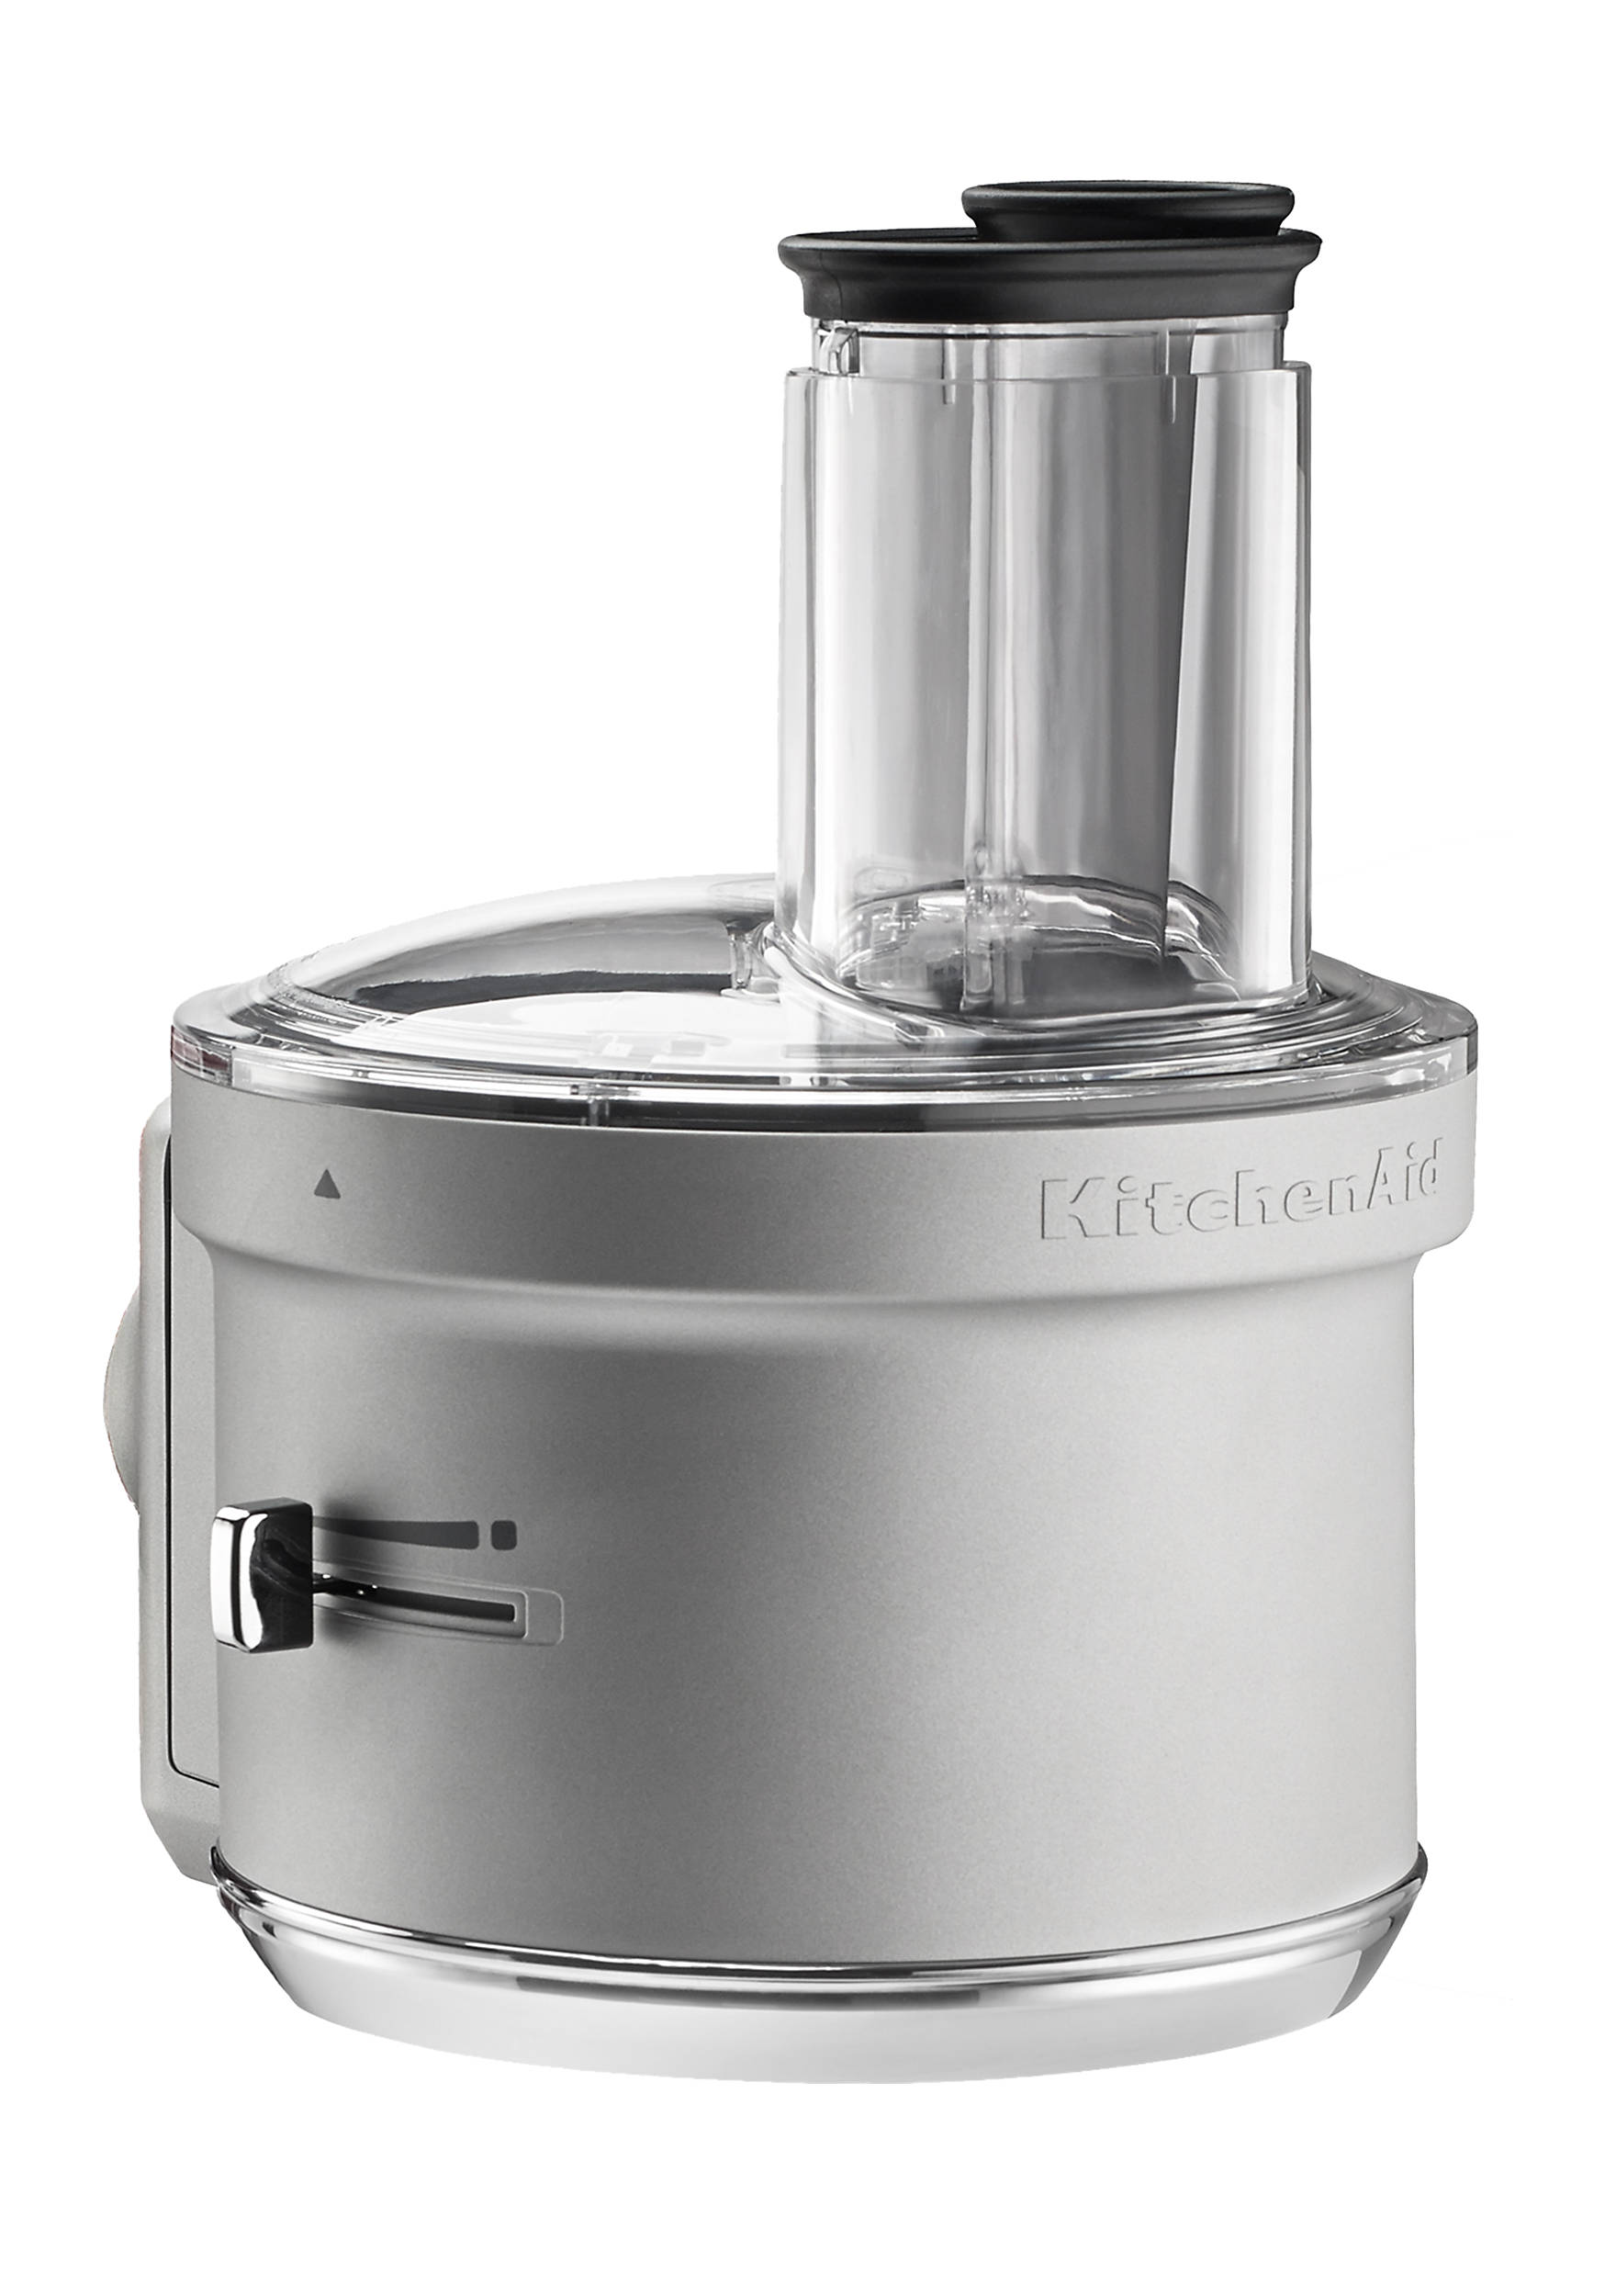 Food Processors Choppers Belk Crown Easy Blend Multi Mini Chopper Kitchenaid Processor Attachment